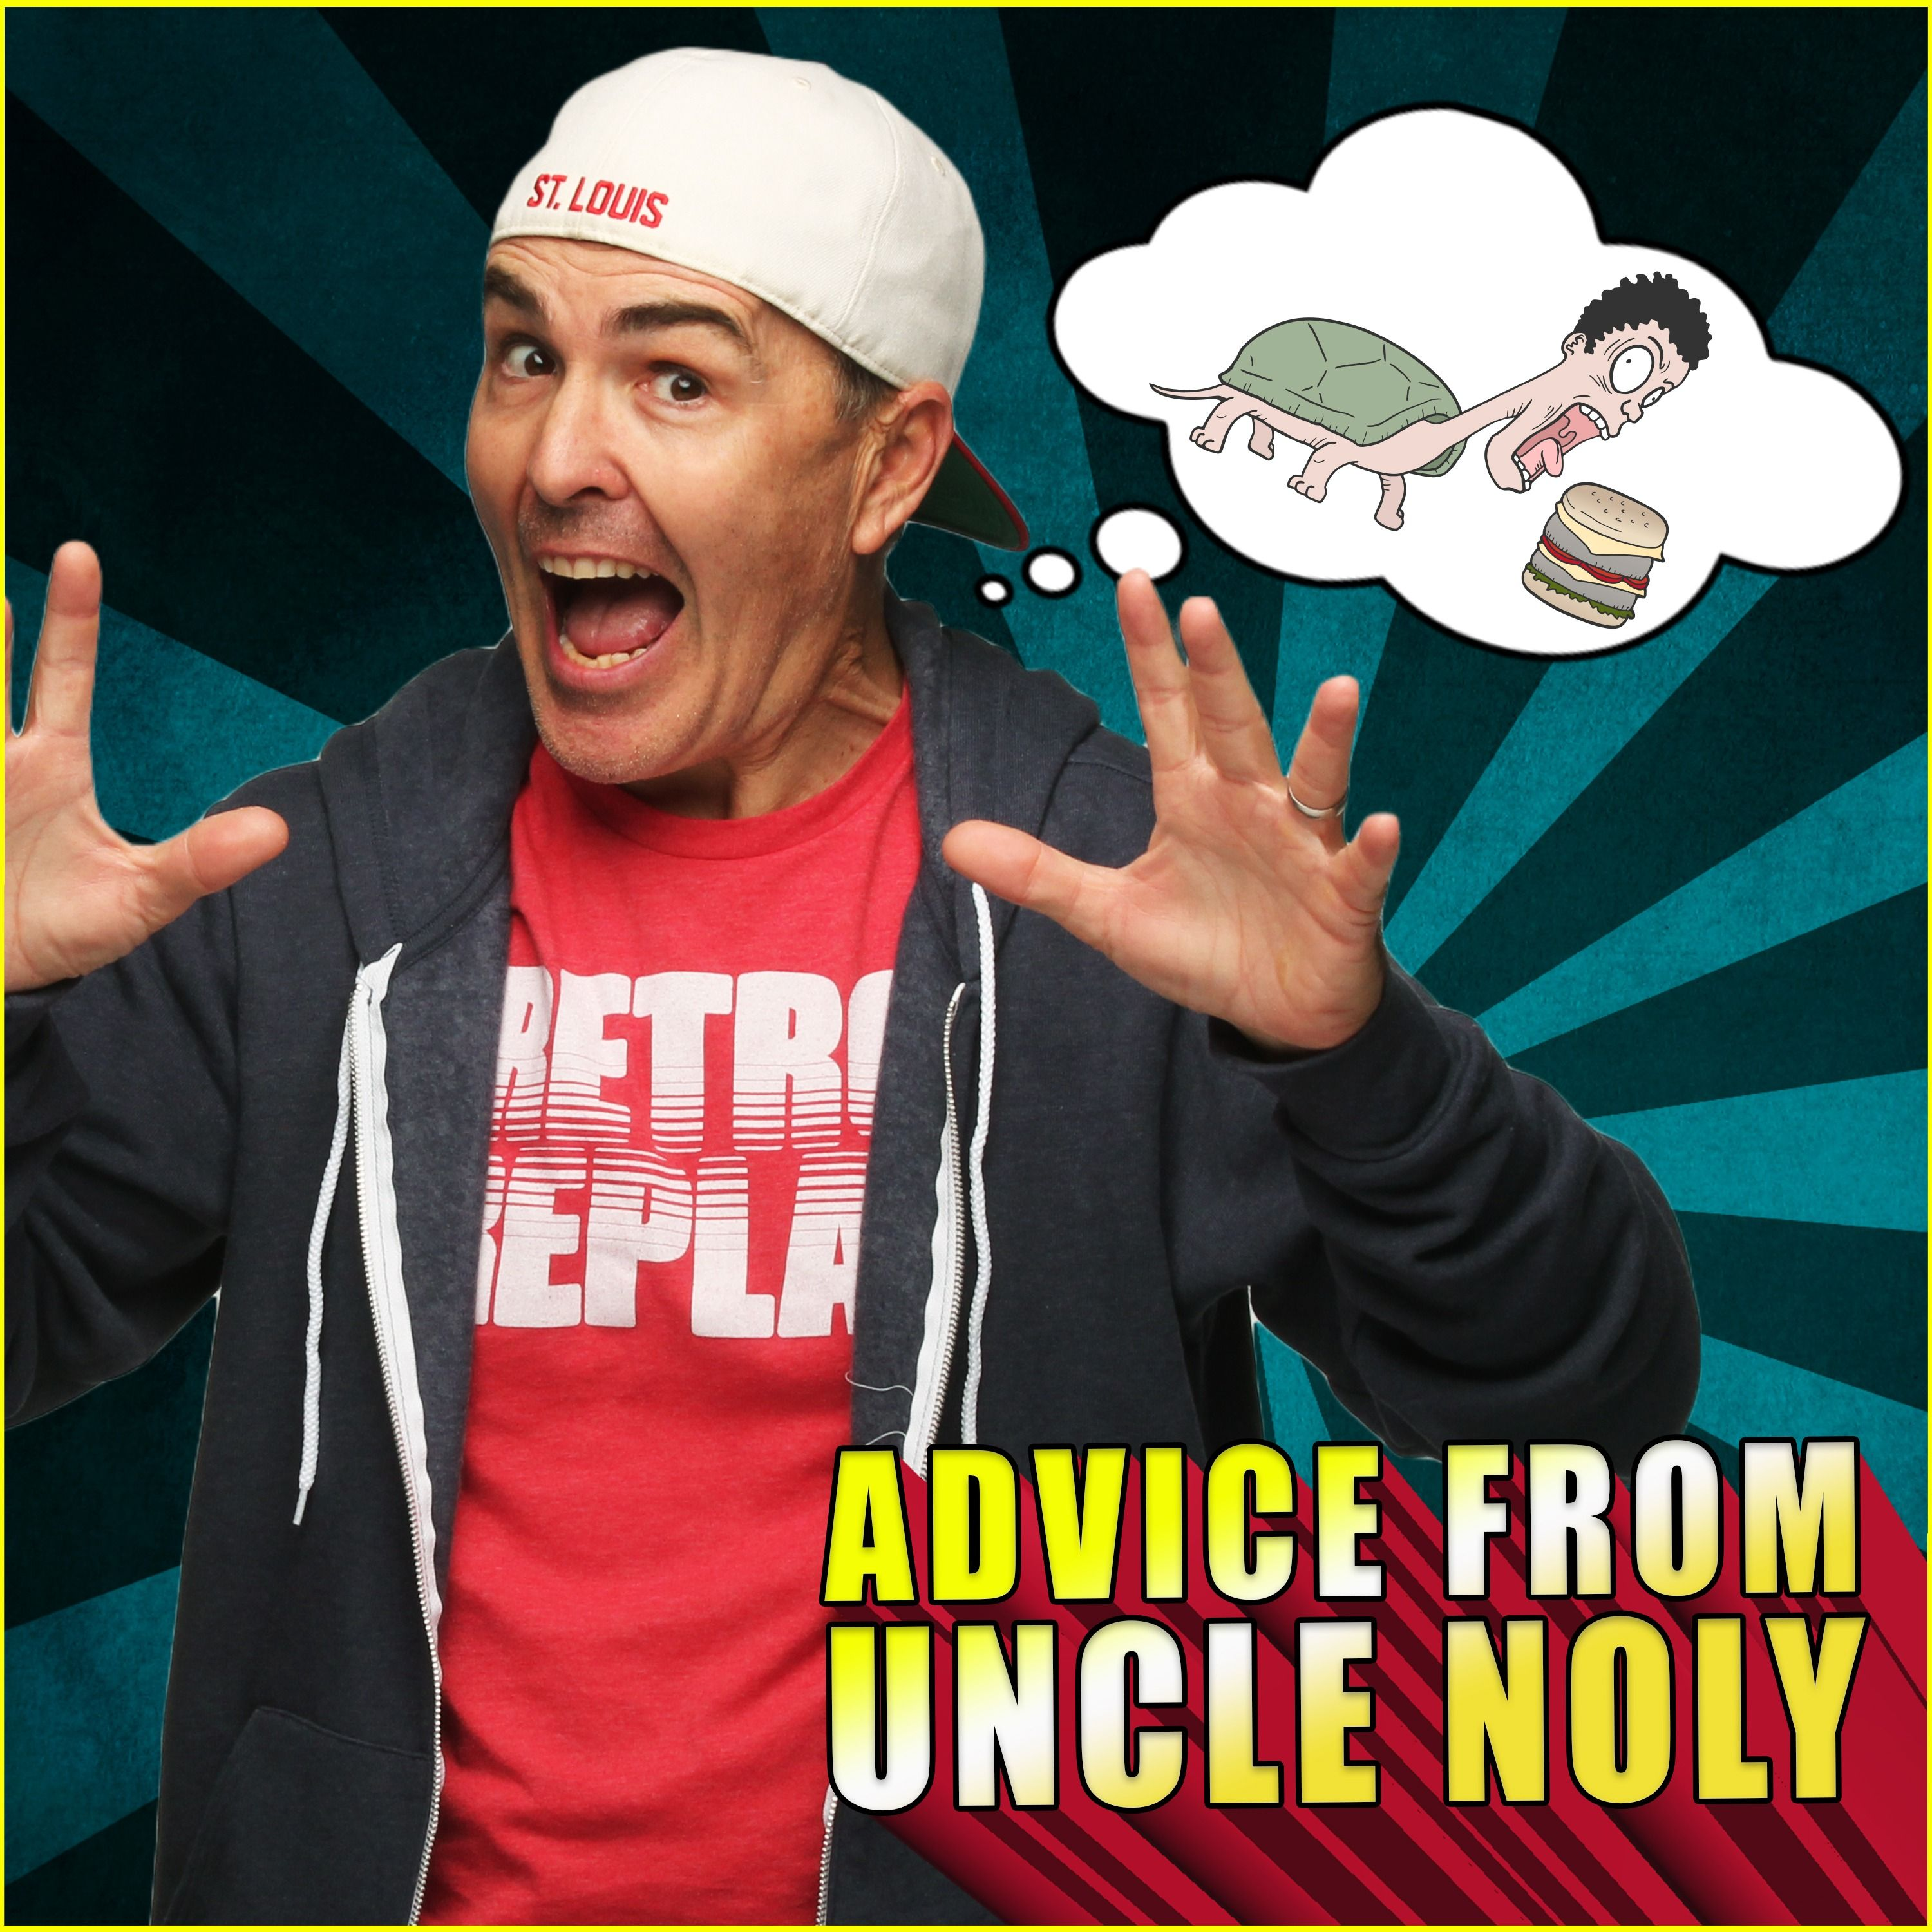 Best Way to Make a Sandwich... If you Know What I Mean? | Advice From Uncle Noly